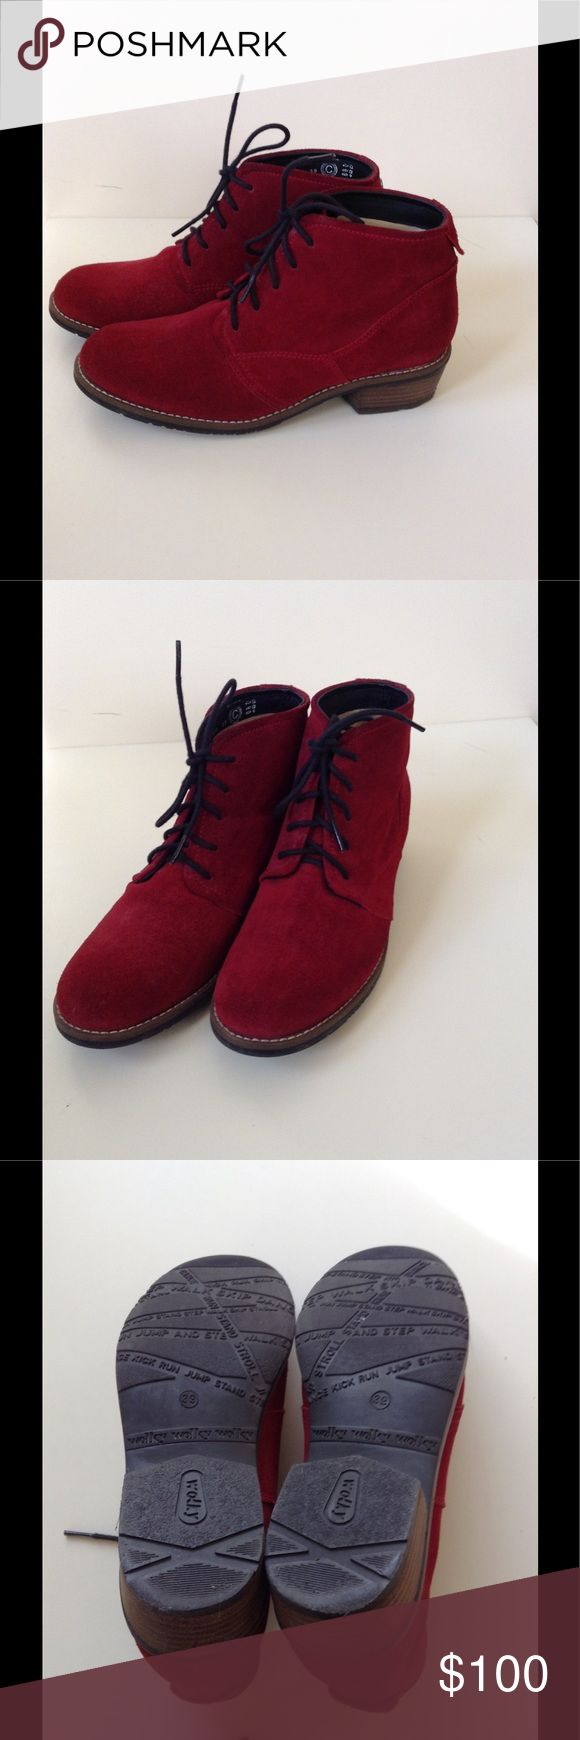 """Wolky Red Suede Boots Adorable red suede low boot. Wolky """"Erne"""" in """"Oxblood Greases Suede"""". Very good condition. Worn only a few times. Small ink mark on inside of right heel (see photo). Hard to find color (still on Zappos for$229 in blue... But not this great, deep red!... Better buy before it gets too cold because I'm starting to want to keep them!!! Important note on size: Posh says European 39 is a size 9. I always wear a 38 and/or 8 - NEVER a 9. Wolky Shoes Ankle Boots & Booties"""